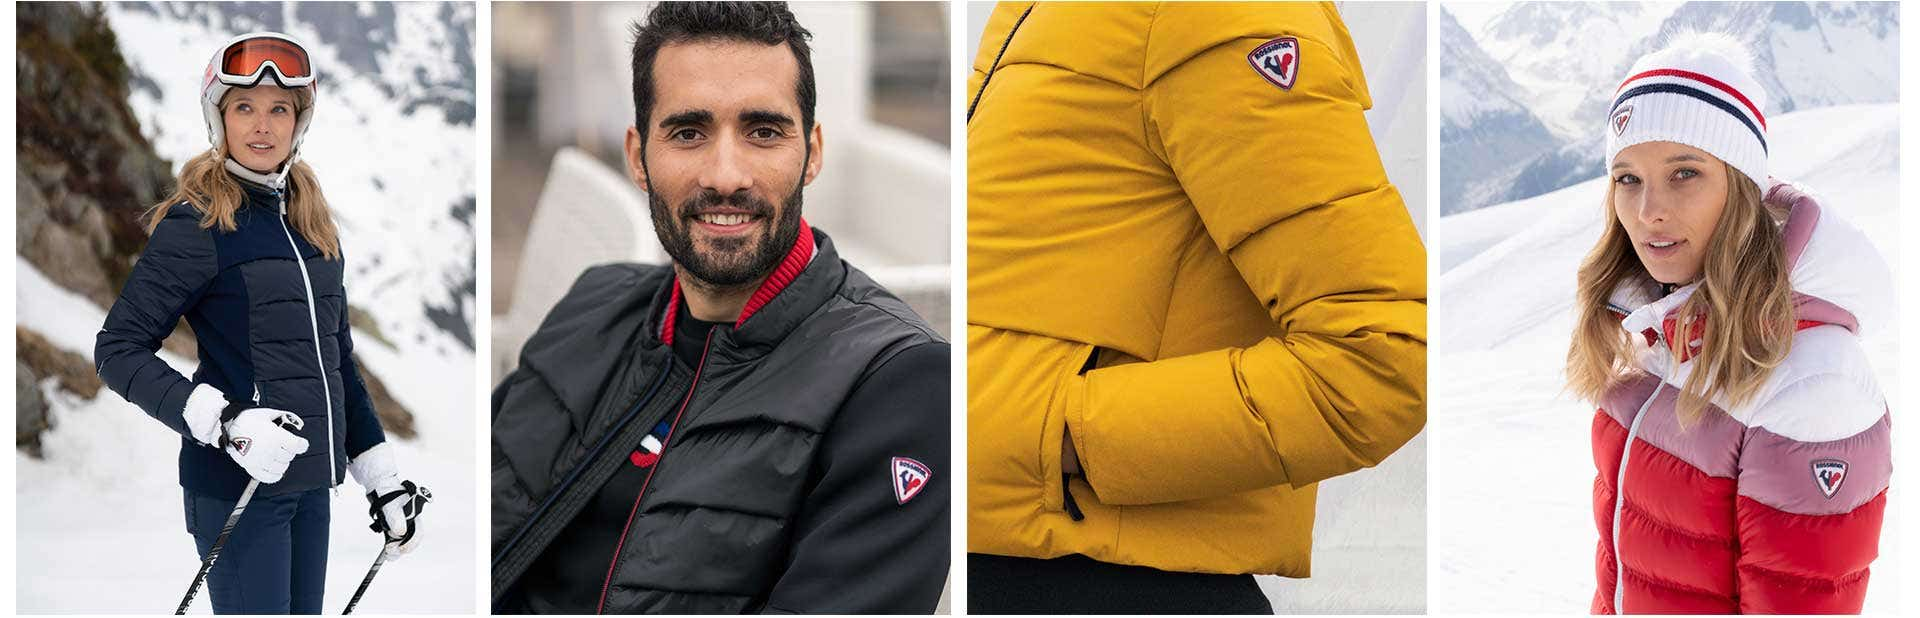 Rossignol history iconic codes elegance Martin Fourcade Laury Thilleman